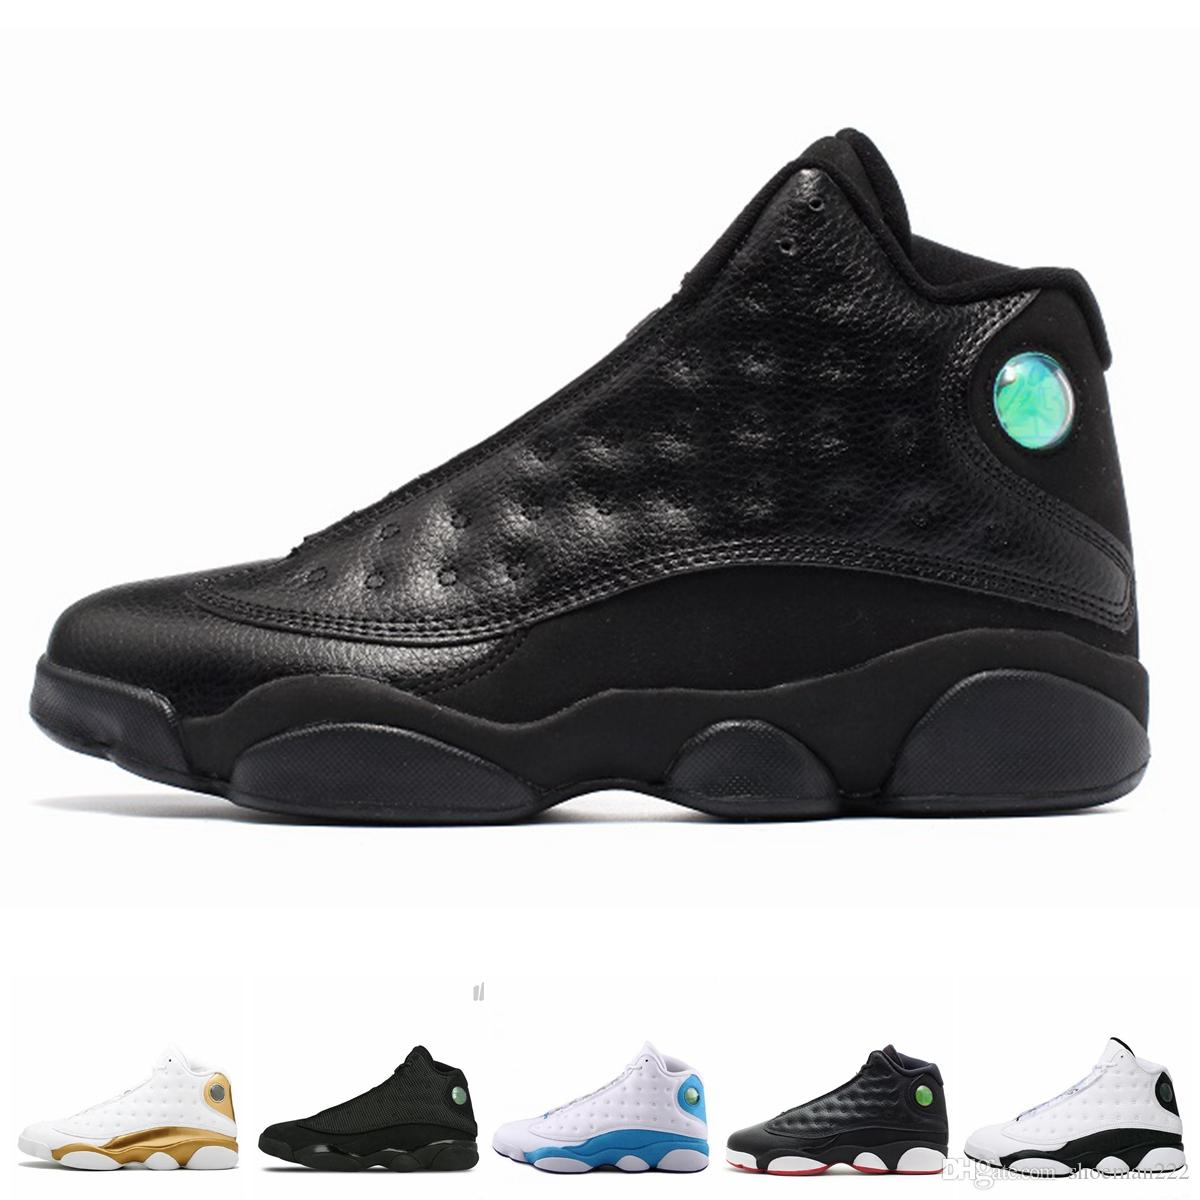 Nike Air jordan 13 13s men he got jogo sapatos designer black cat melo classe de 2003 gray toe crest baixo low chutney sports sneakers shoes